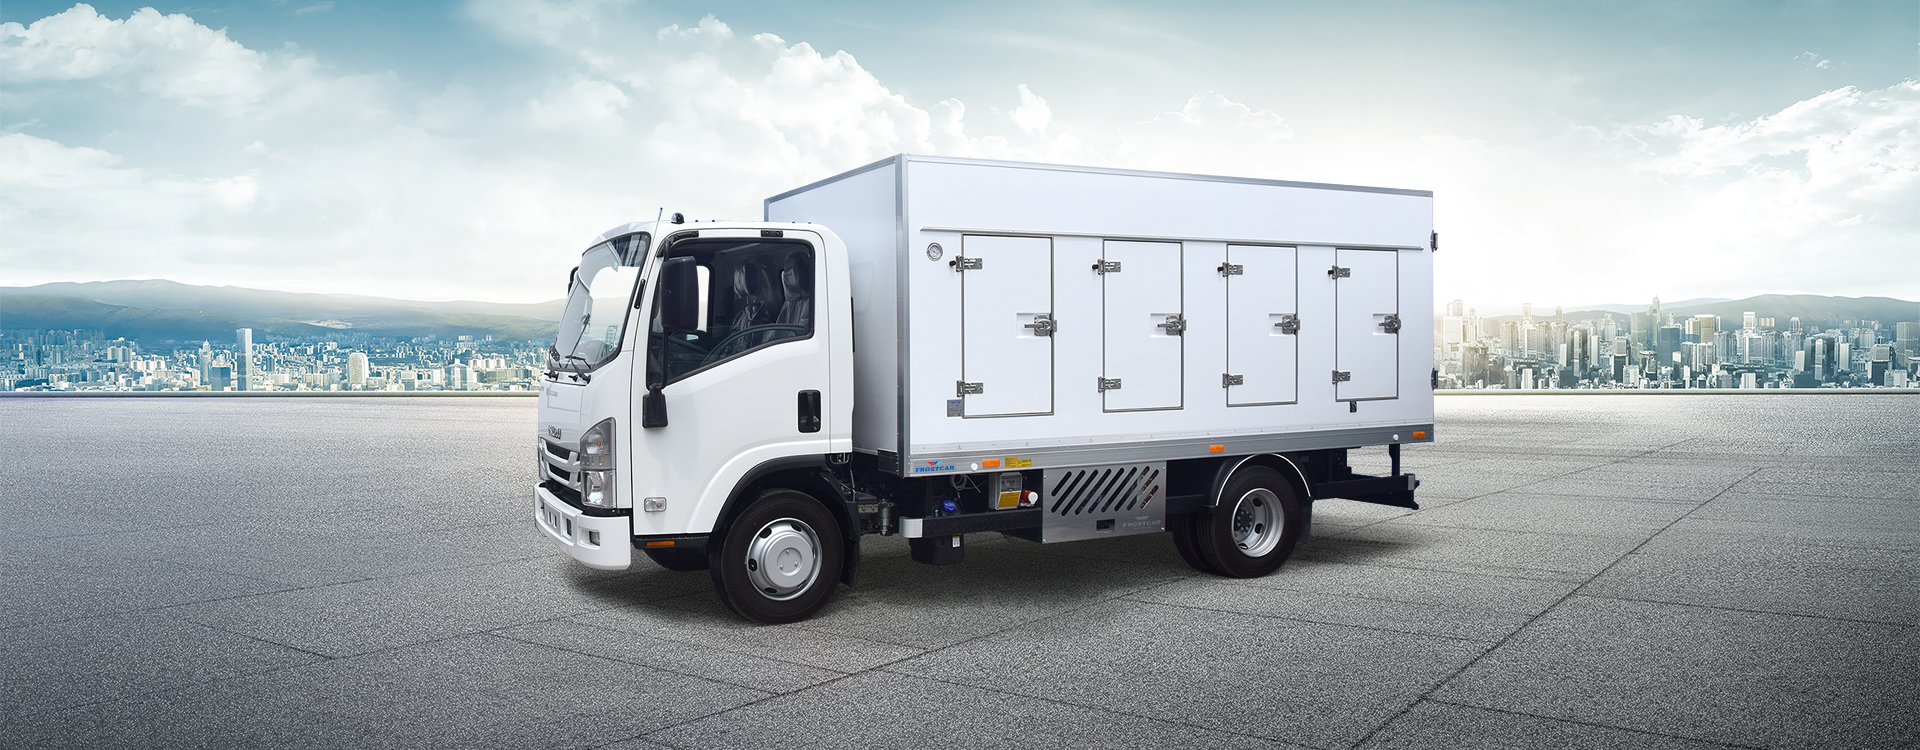 FROSTCAR FC430 Eutectic Body/Chassis Eutectic Refrigeration